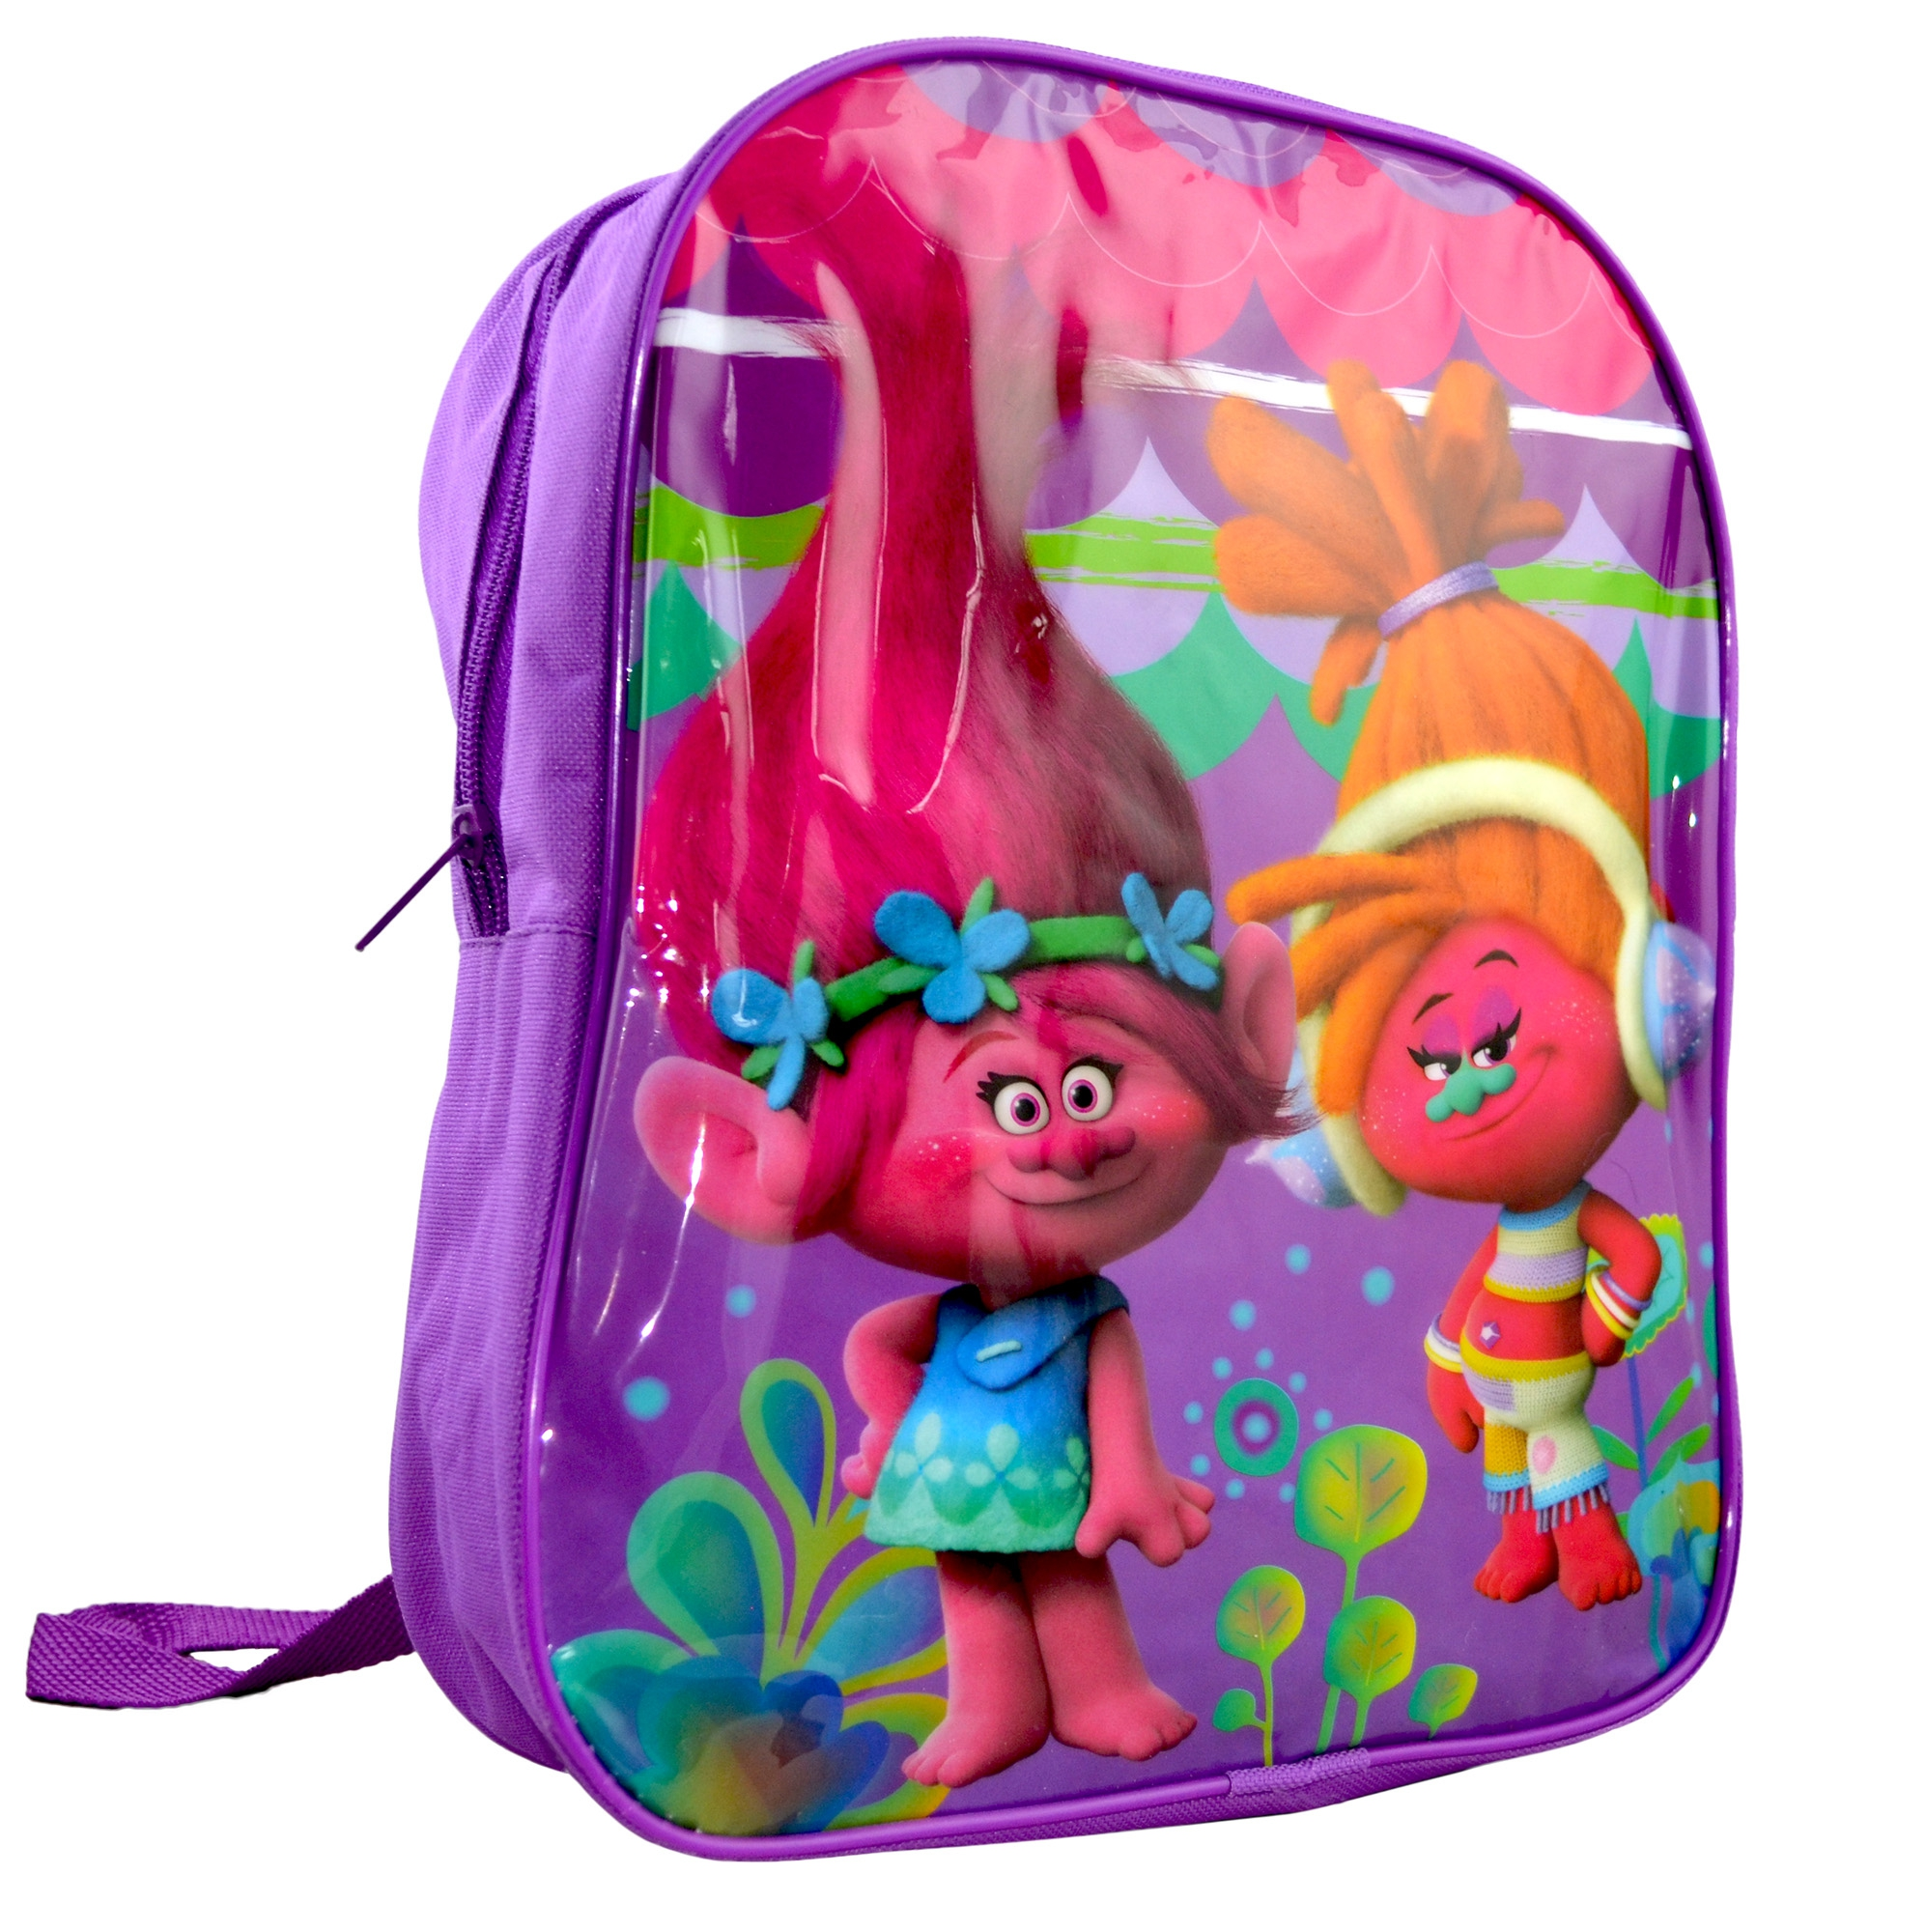 Trolls Poppy 'Friends' Junior School Bag Rucksack Backpack